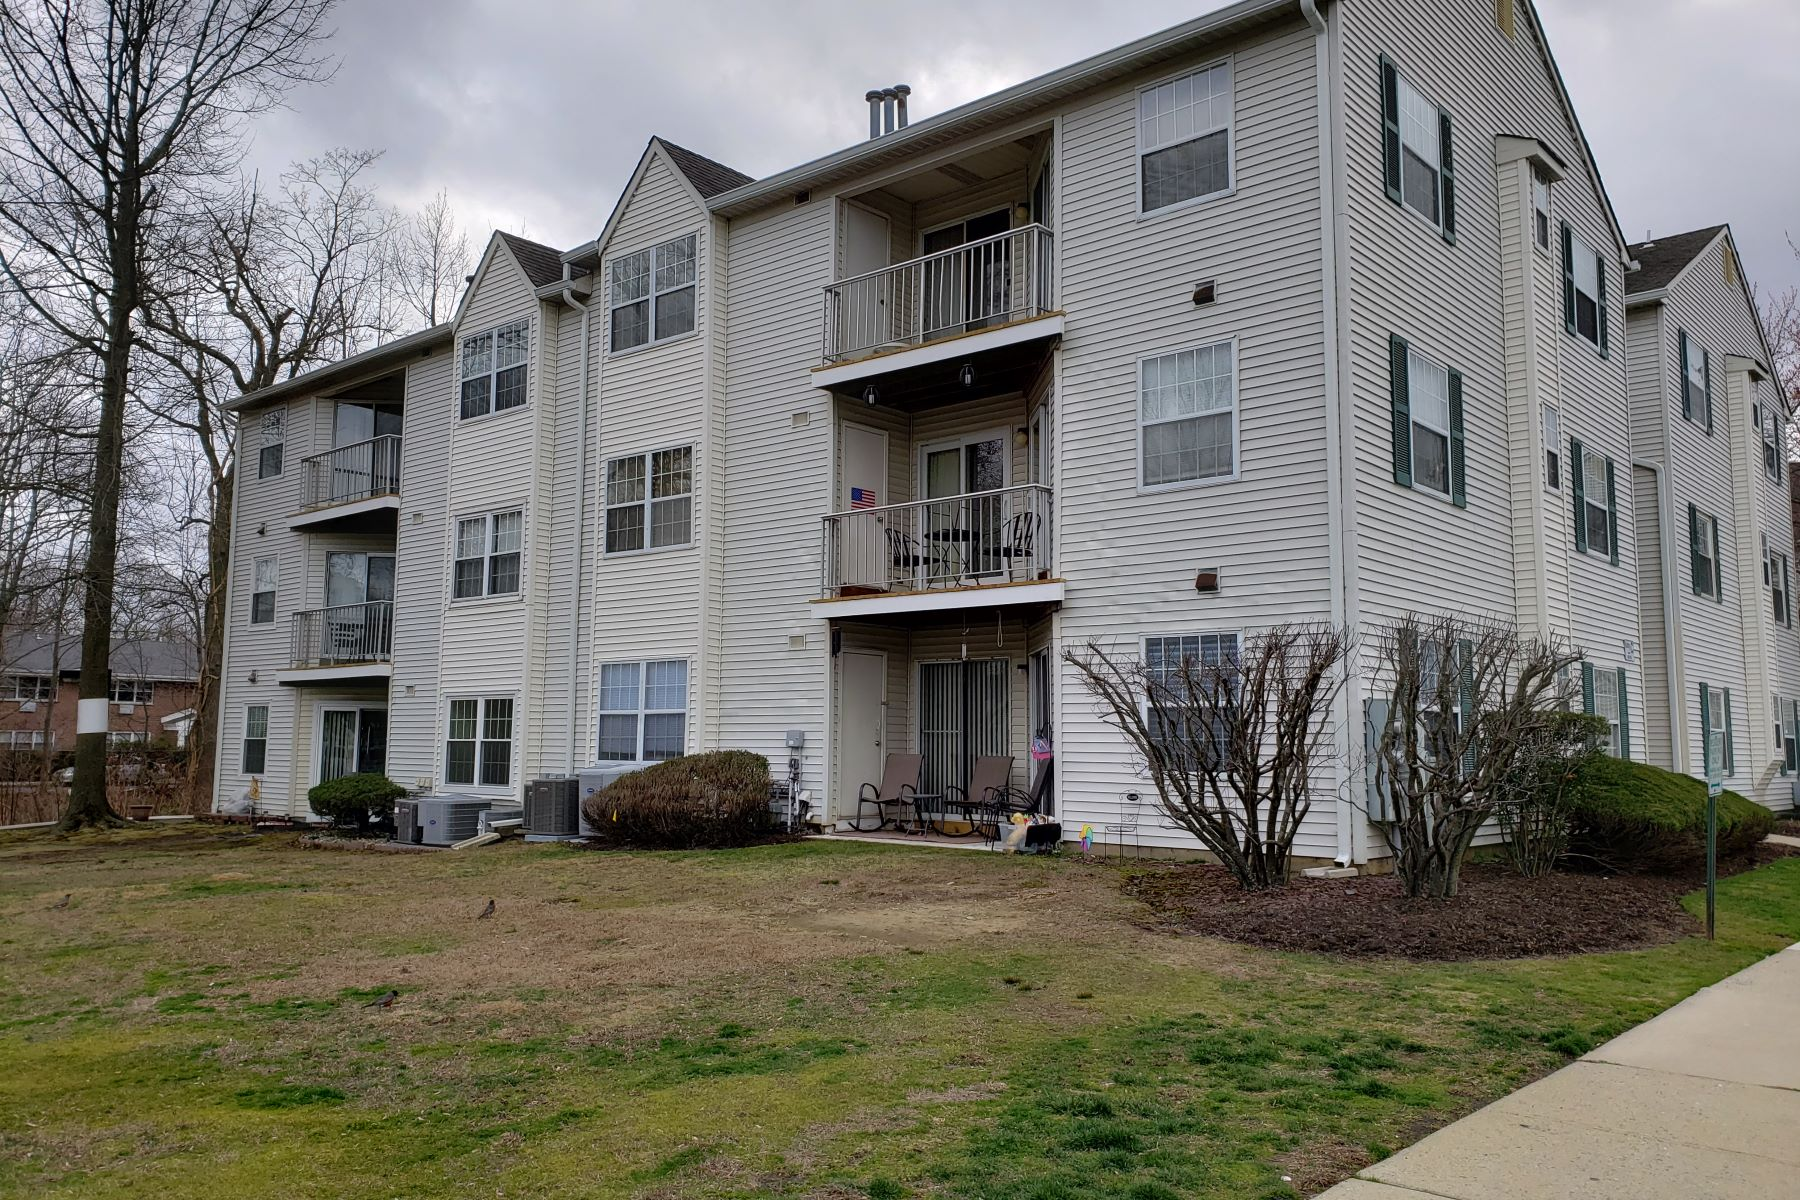 Condominiums for Sale at Gateway Park 231 Atlantic St 54 Keyport, New Jersey 07735 United States